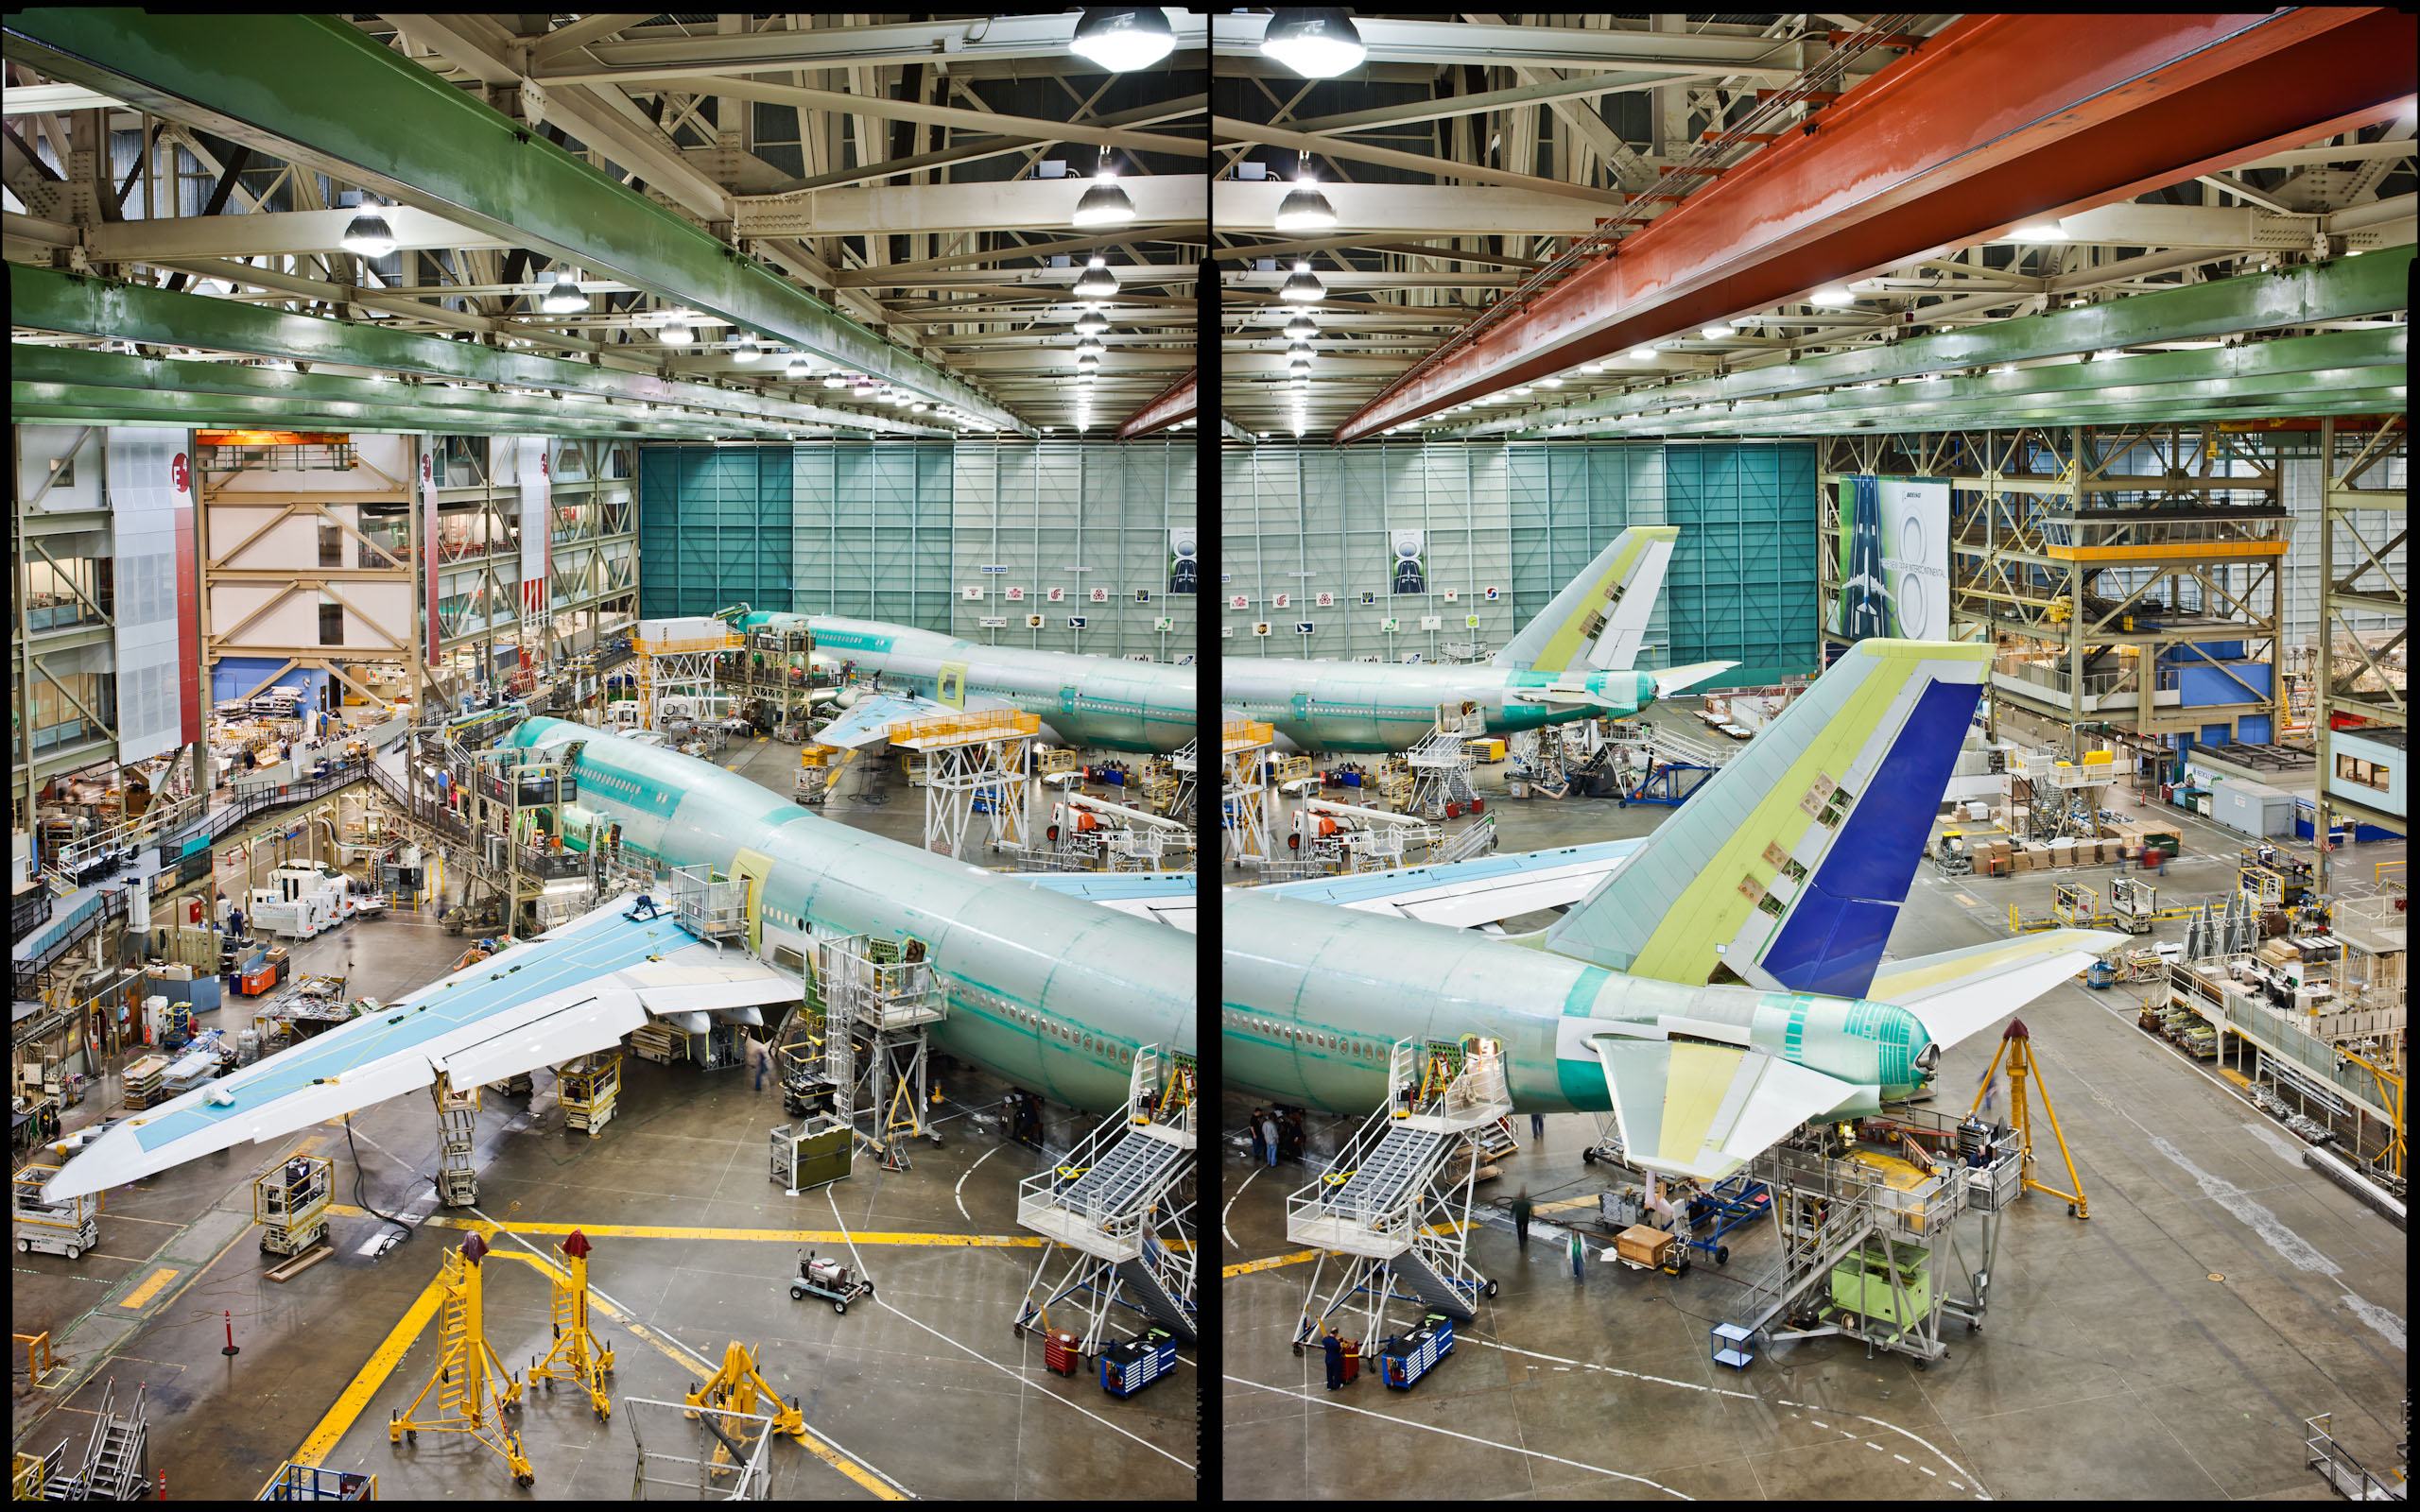 747-800 in slant assembly - Everett, WA - Conde Nast Traveler